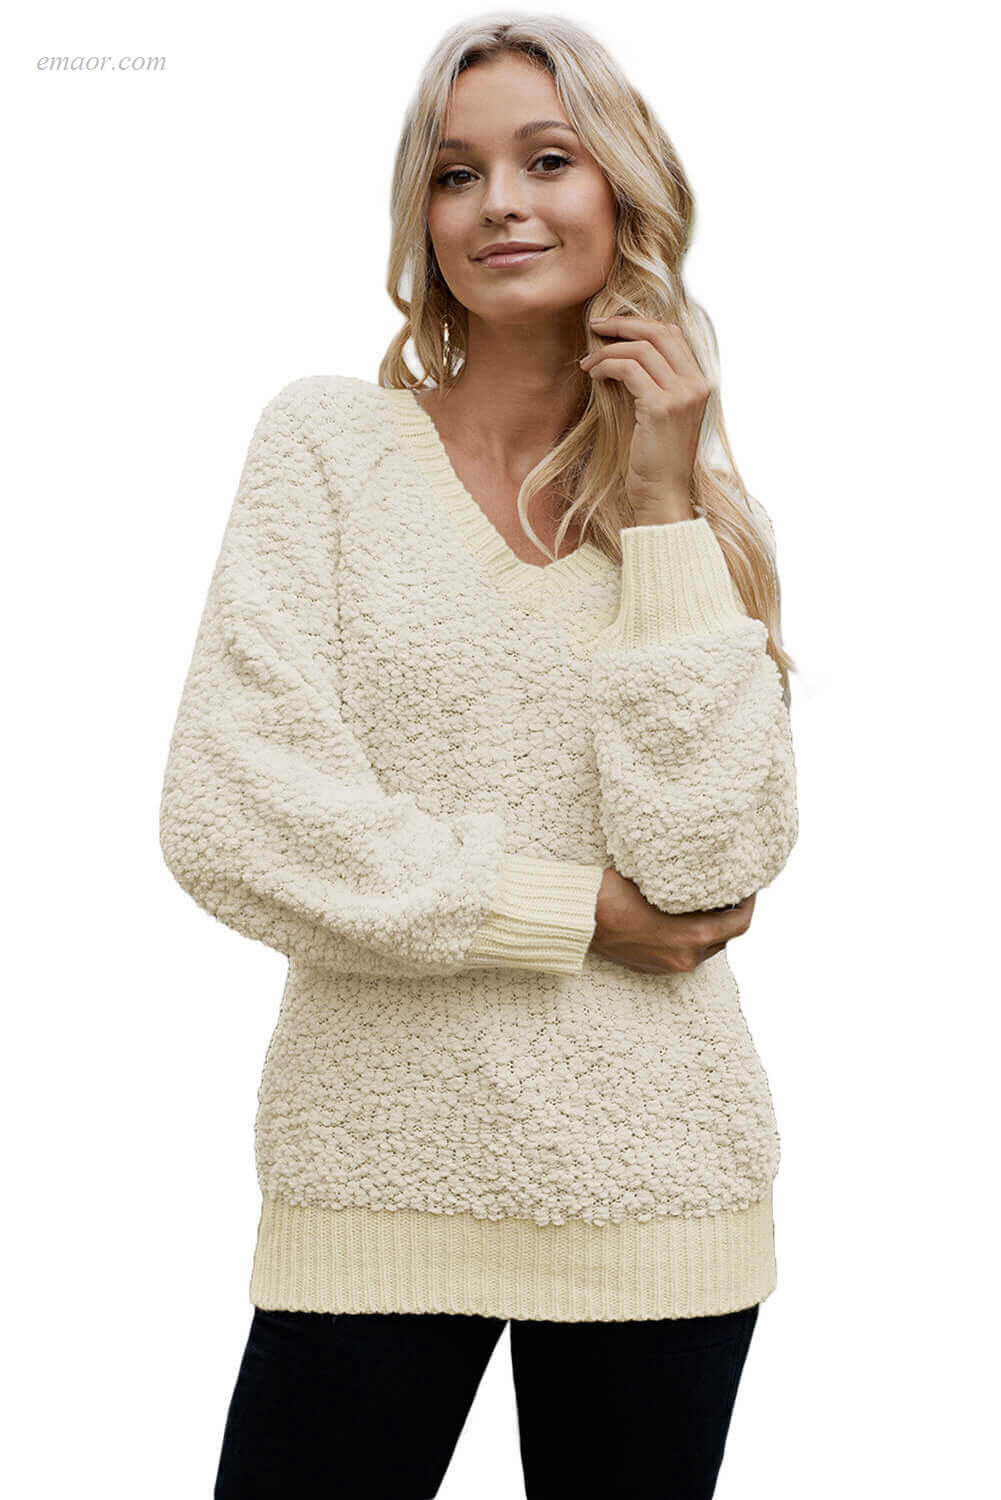 Fashionable Outerwear Men Ribbed Neckline Popcorn Knit Sweater Sweaters & Cardigans on Sale